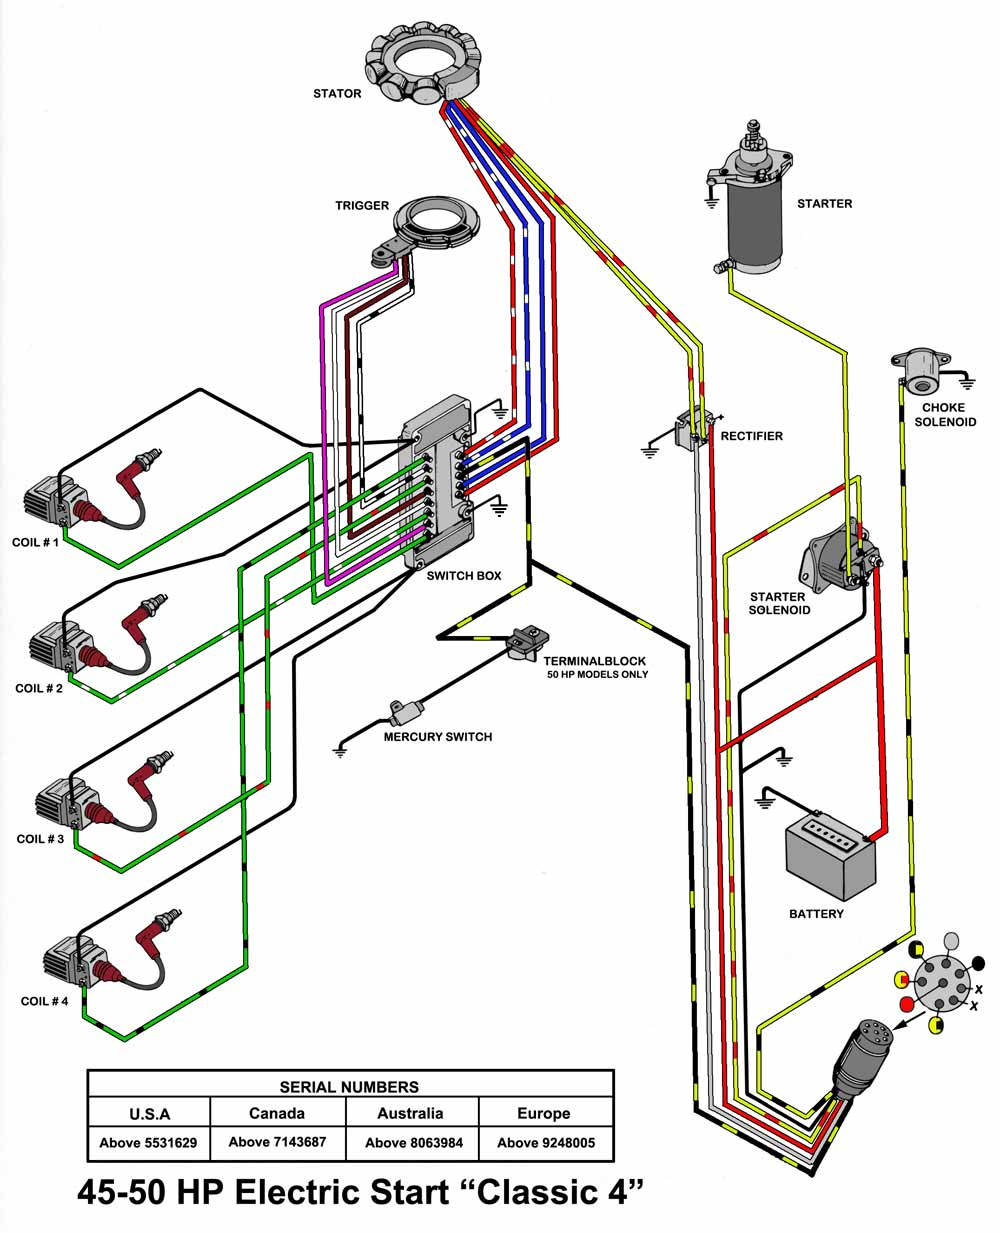 1985 mariner 75 hp wiring diagram wiring diagram on the net 1995 Mercury Outboard Wiring Diagram Schematic 1995 mercury outboard 60 hp wiring